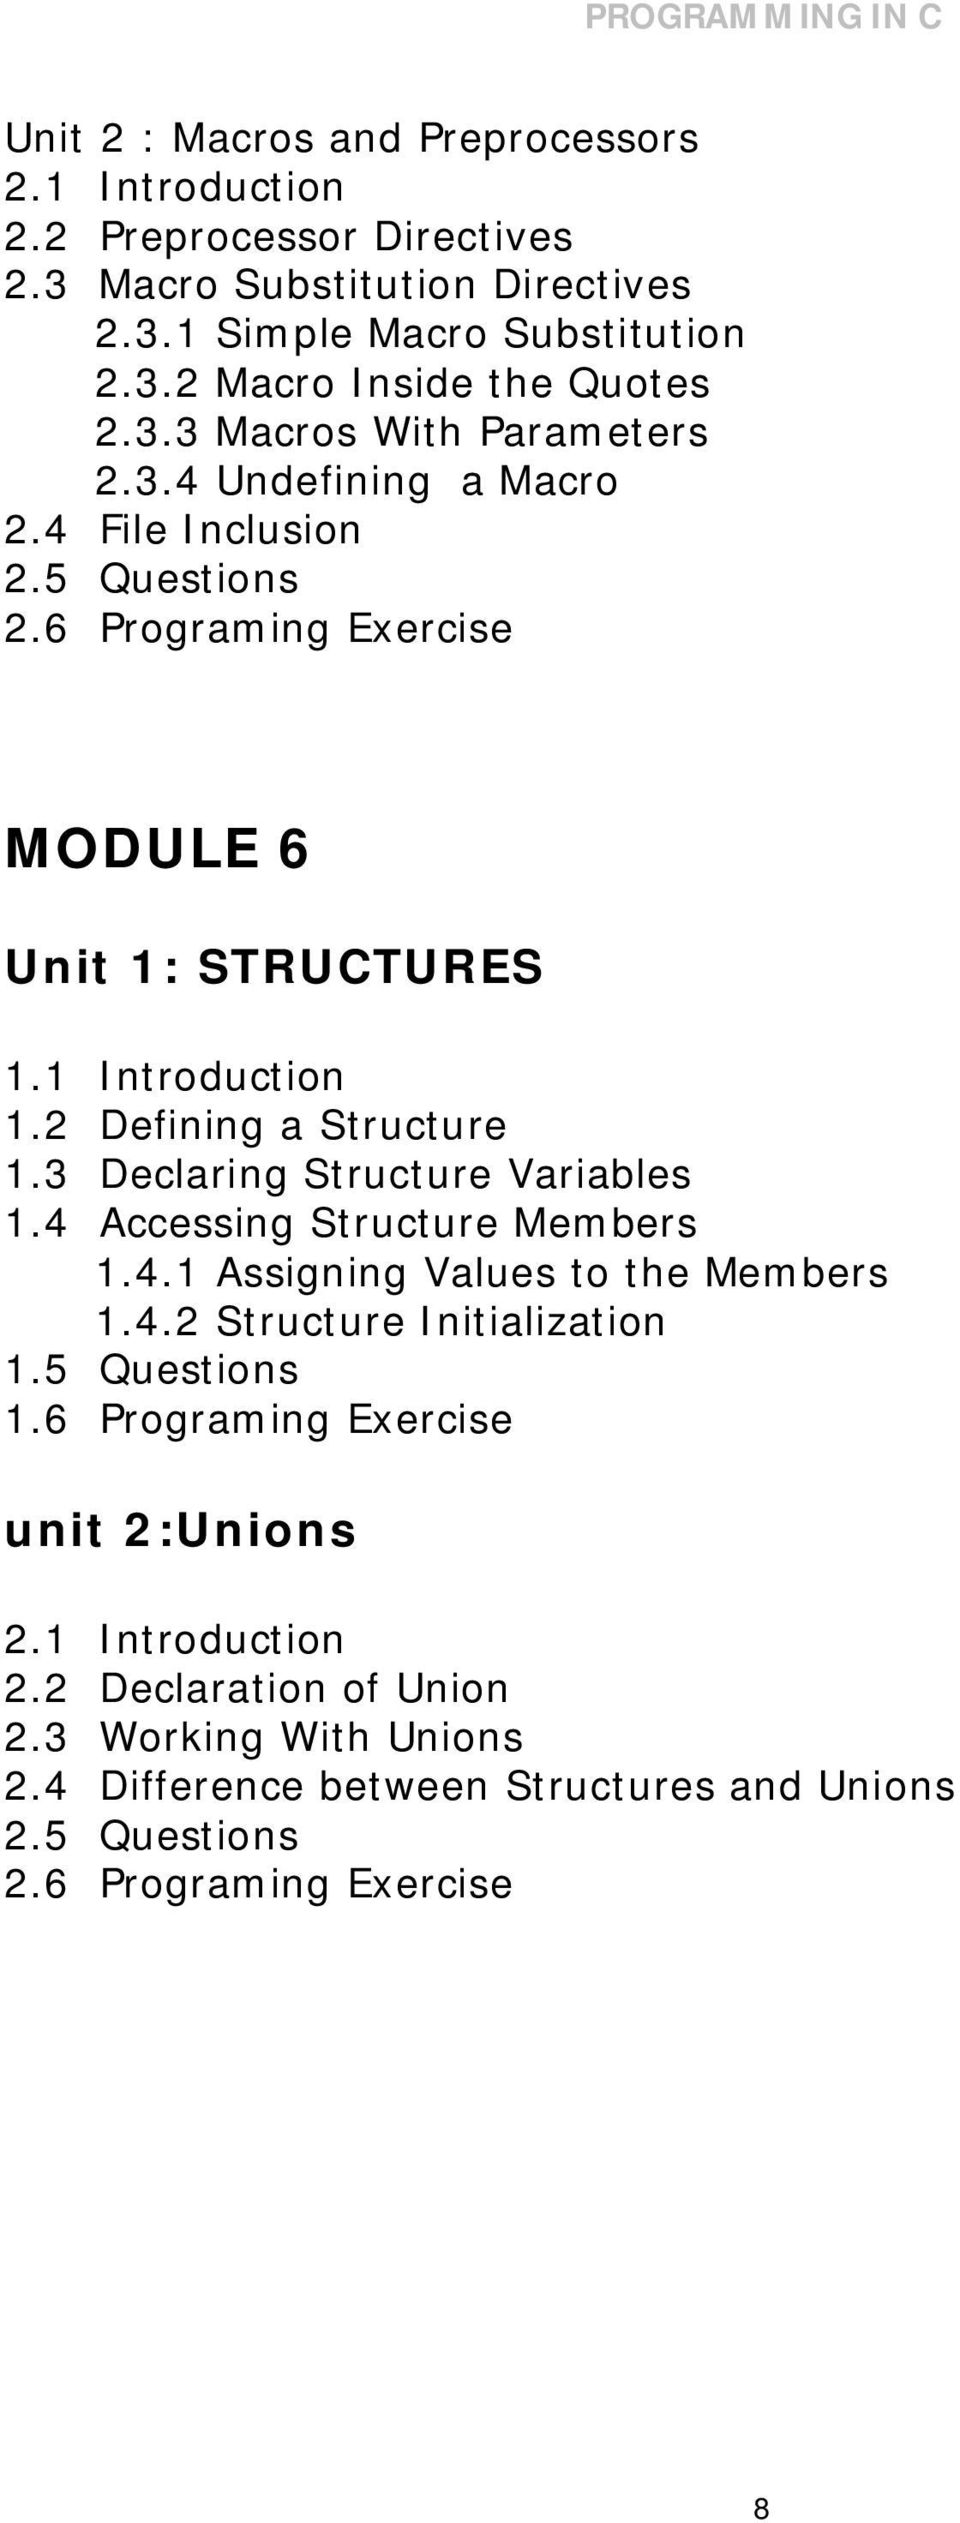 2 Defining a Structure 1.3 Declaring Structure Variables 1.4 Accessing Structure Members 1.4.1 Assigning Values to the Members 1.4.2 Structure Initialization 1.5 Questions 1.